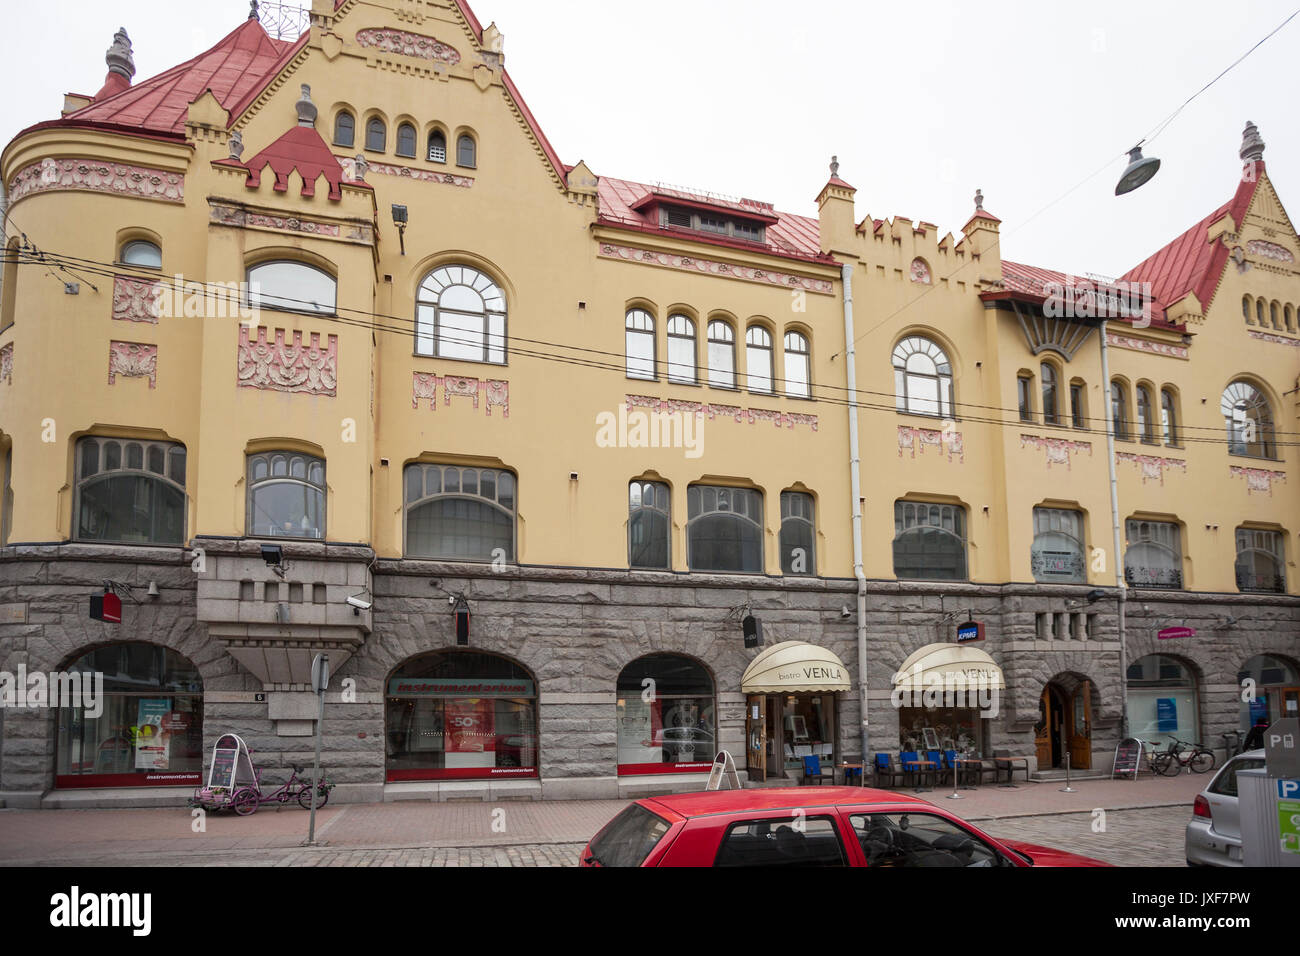 Jugend style building in tampere - Stock Image